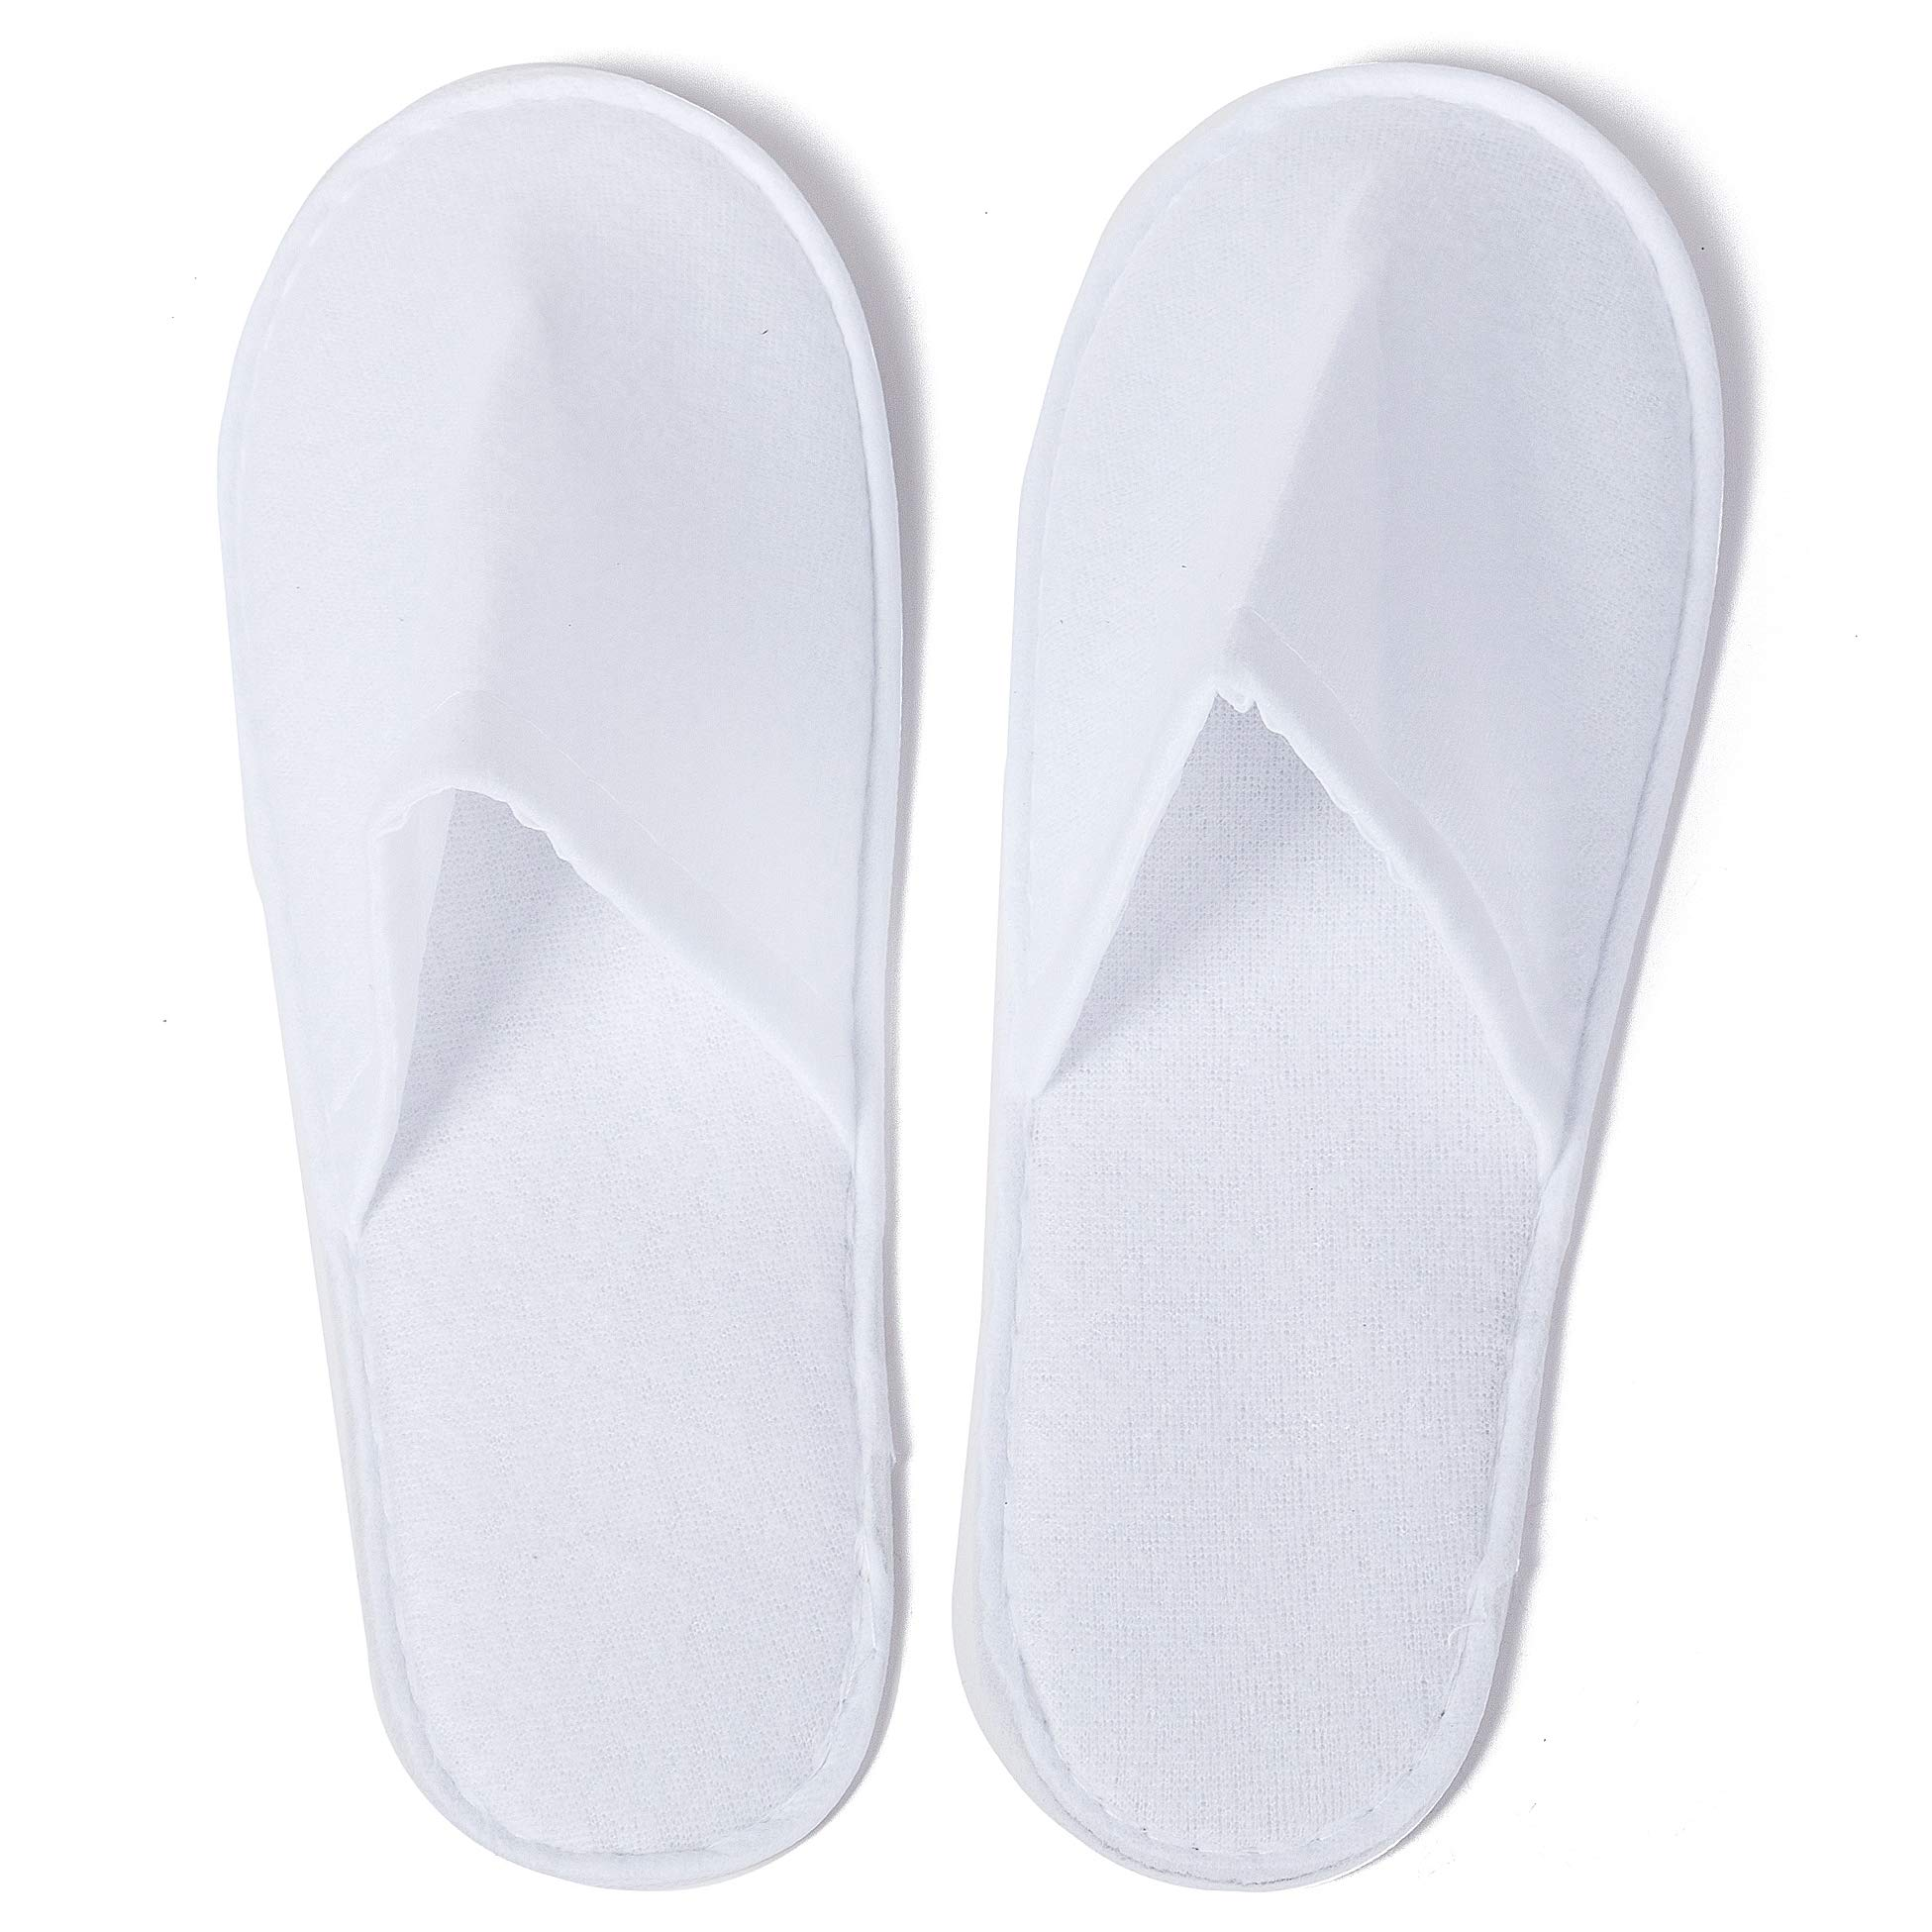 25 Pack Pairs Disposable Spa Slippers Hotel Closed Toe Bulk Salon Shoes Hospitality Motel Guest White Soft Terrycloth 7-11 US Men or 8-12 US Women by Xena